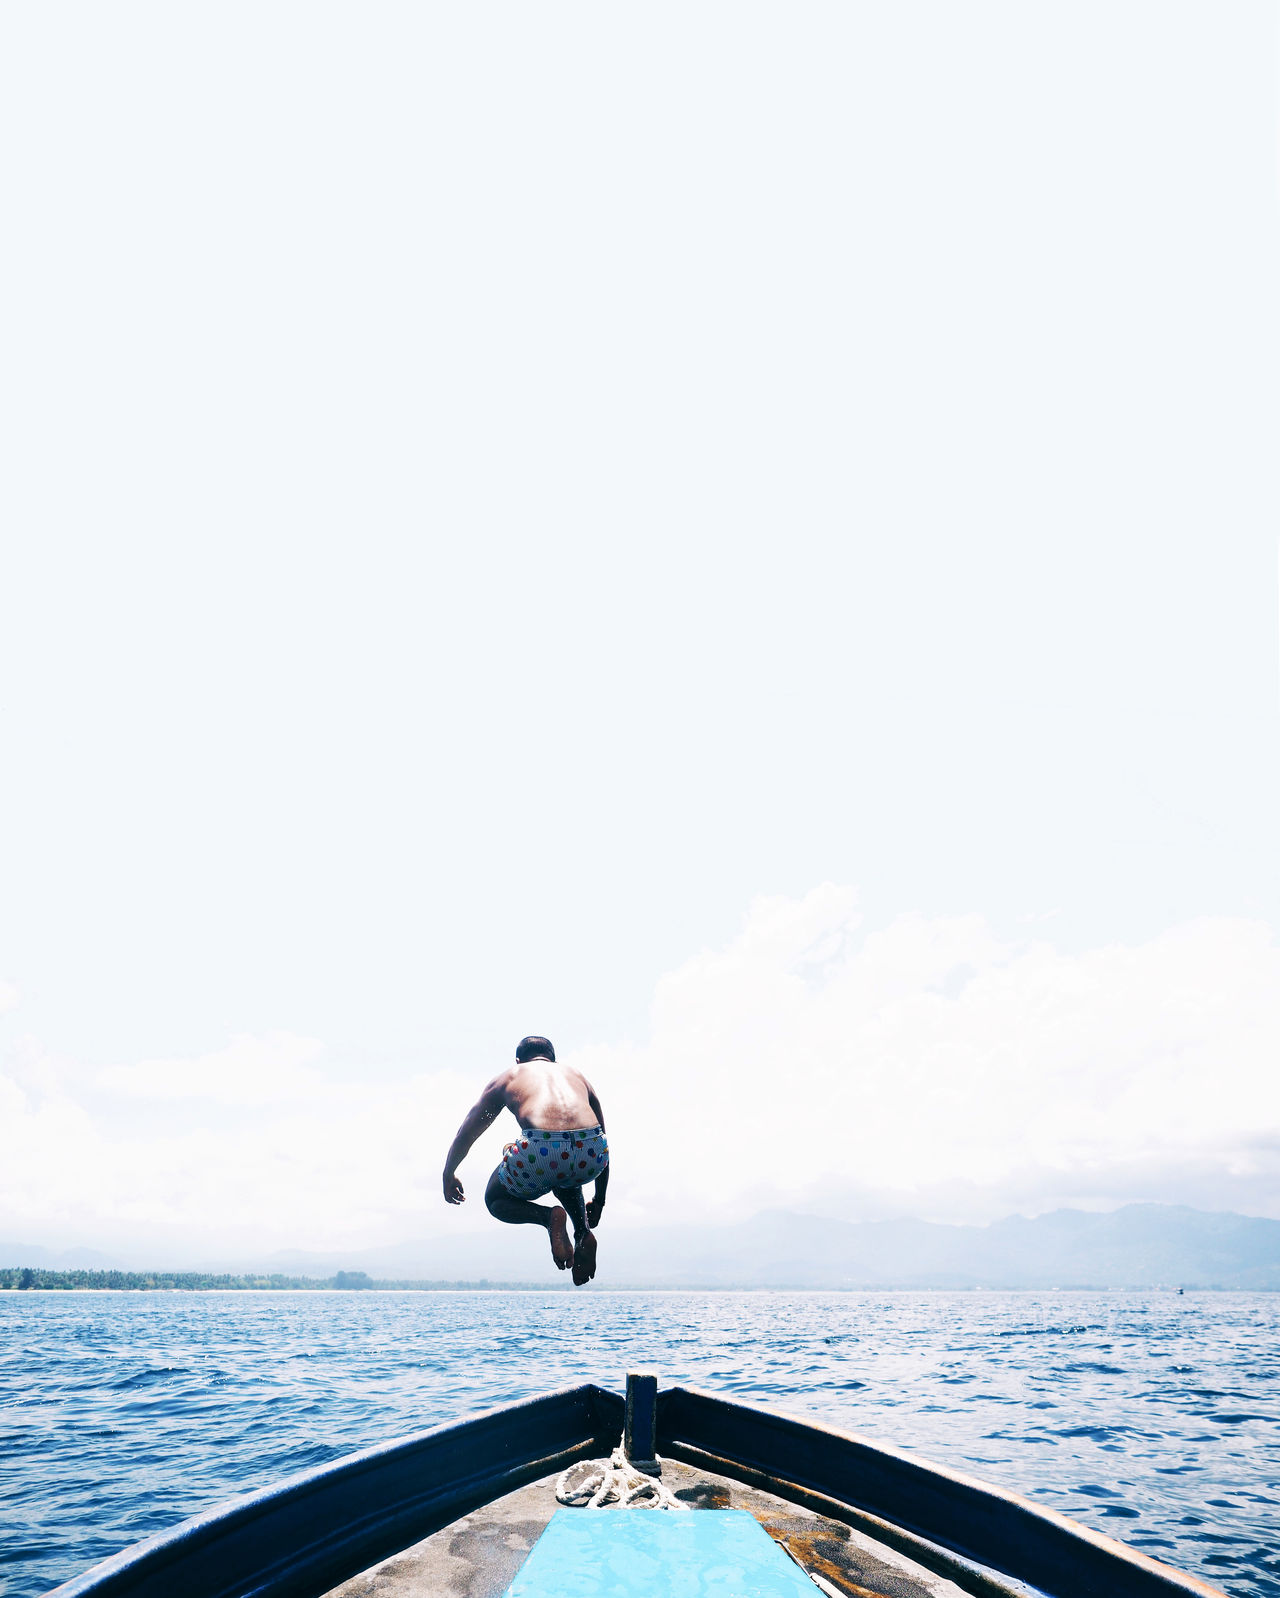 Jump! Adventure Adventures ASIA Blue Boat Eyem Eyem Best Shots Eyemphotography INDONESIA Minimal Minimalism Ocean Olympus Olympus Inspired Olympus Pen-f Olympusinspired Outdoors People Sea Sea And Sky Sky Swim Travel Water